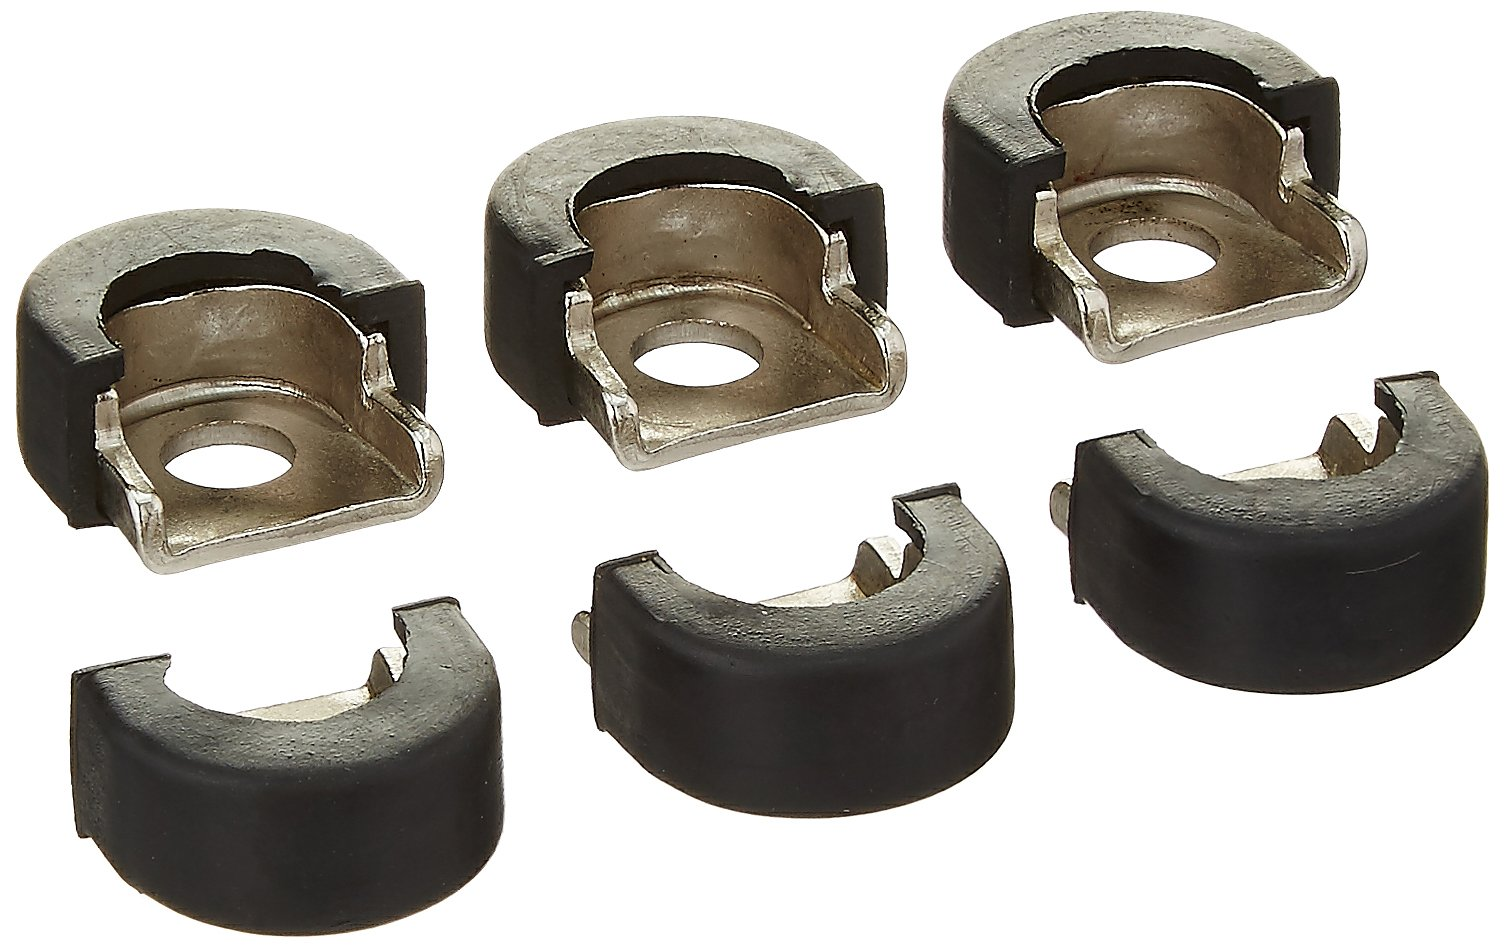 Latin Percussion LP628 ProCare Integrated Shell Protectors by Latin Percussion